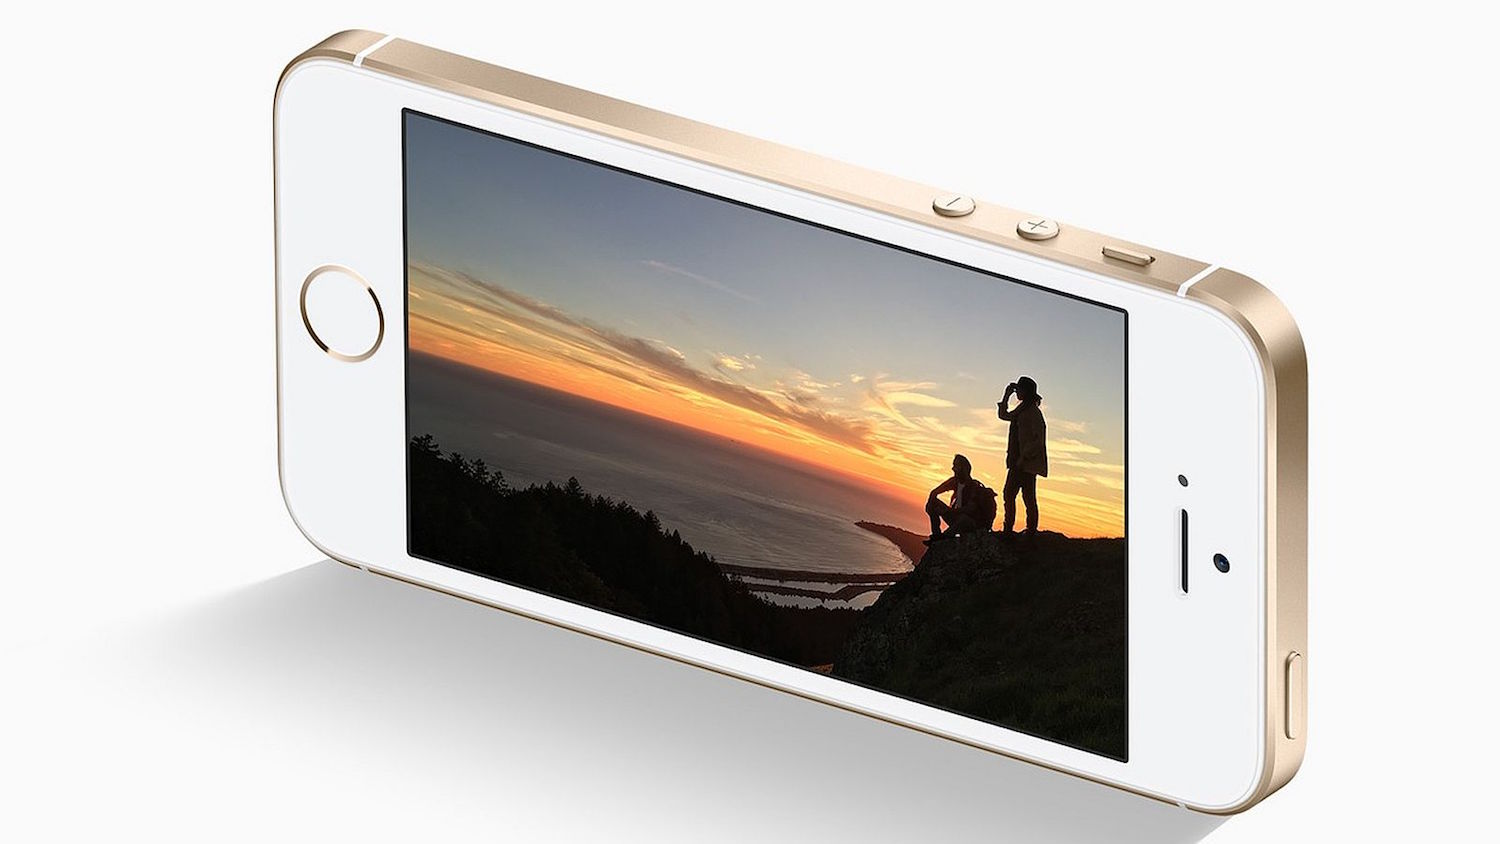 iPhone SE: detailed specifications and everything you need to know